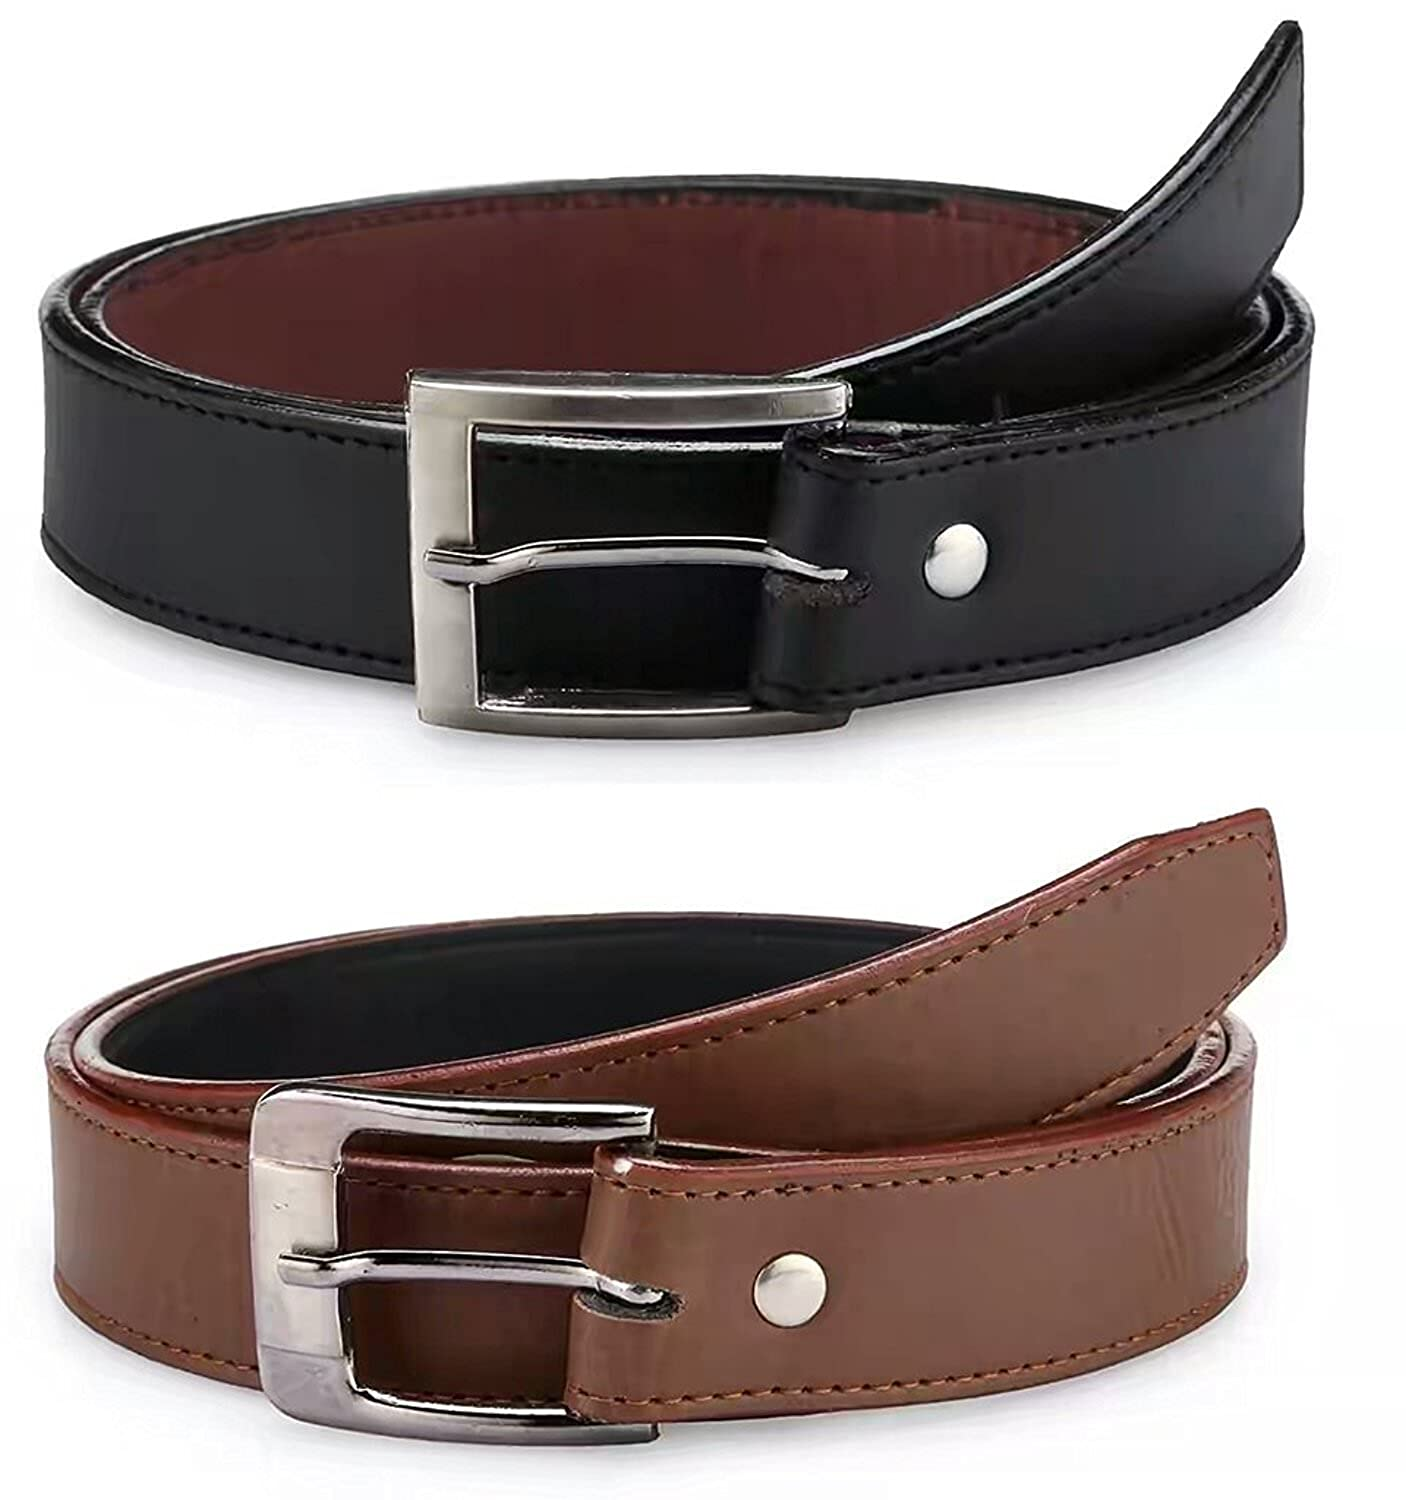 Devil Boy's PU Leather Belts Set of 2 Combo Pack (Black & Brown)